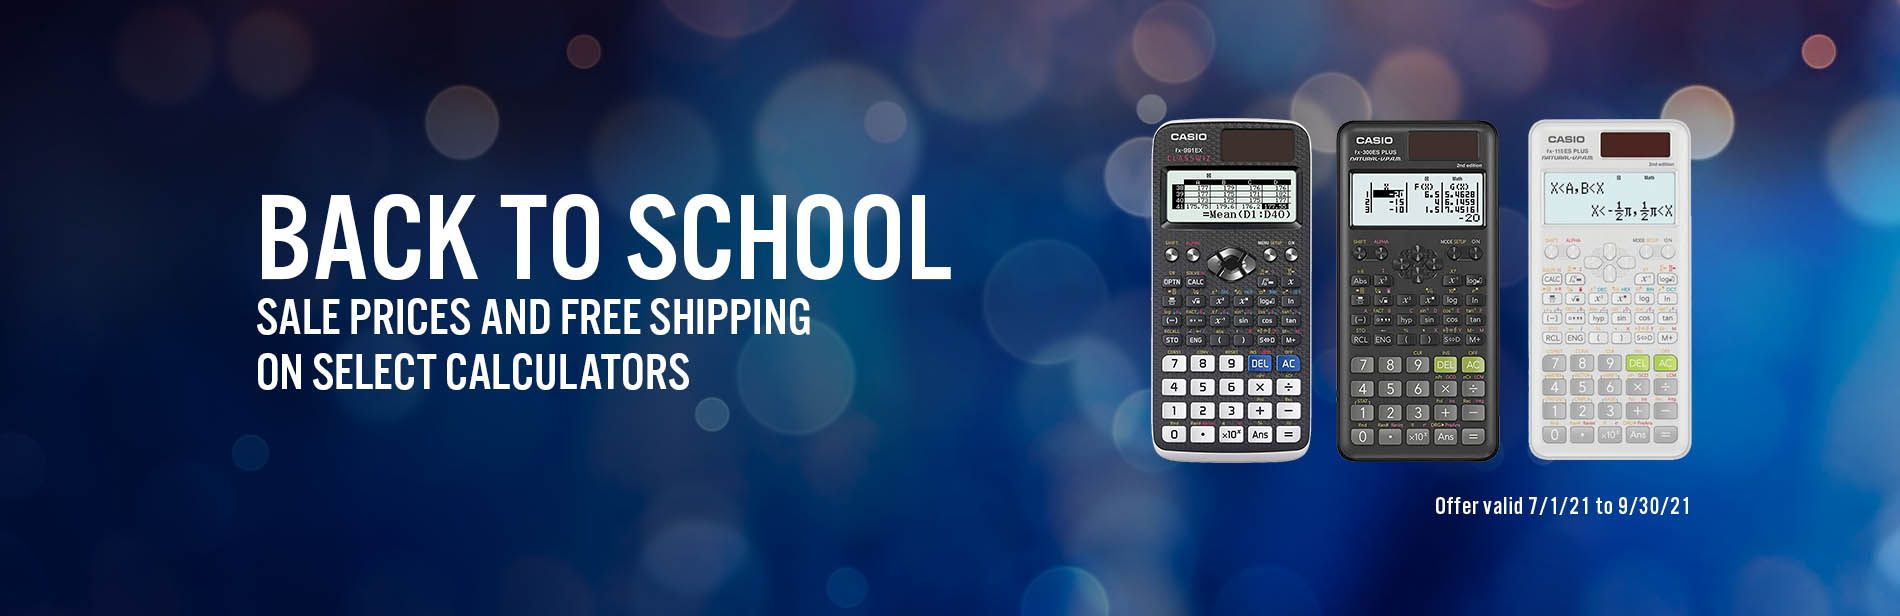 Free shipping on select calculators